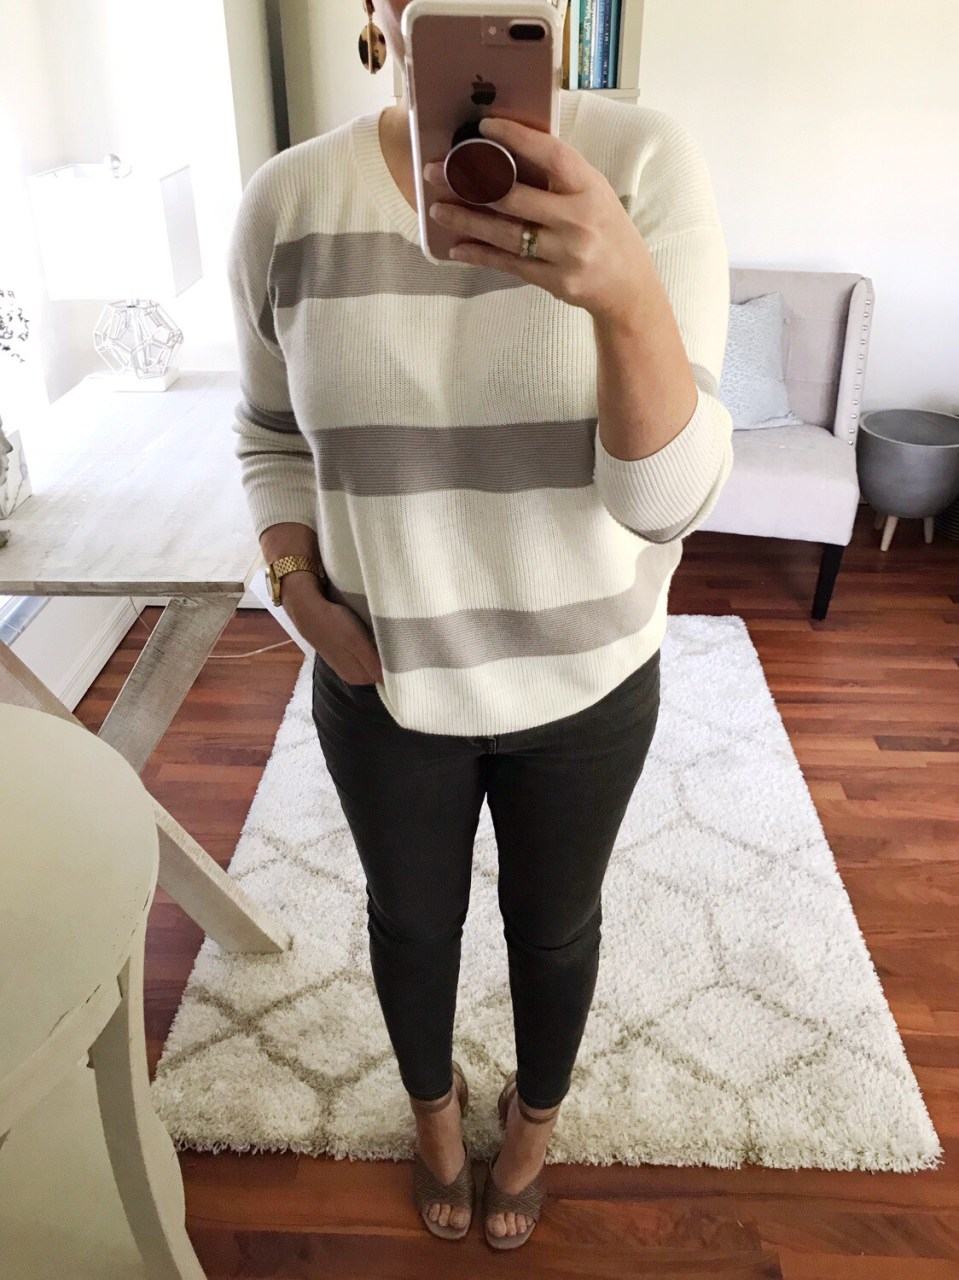 Style blogger wearing cream and gray striped sweater with Everlane authentic stretch hi-rise skinny jeans in washed black, accessorized with resin tortoise earrings and Italian leather espadrille sandals from TJ Maxx.